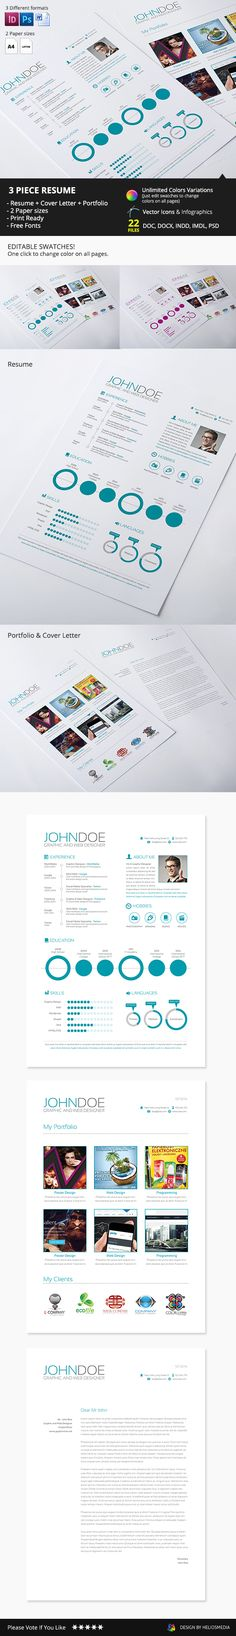 Features- 22 files included (DOC, DOCX, INDD, IDML, PSD)- CMYK, 300 DPI- Print Ready- Editable Swatches- Free Fonts- Resume + Cover Letter + Simple Portfolio- Fully Editable and Organized- Vector icons and infographic - Photo and logos from previ…